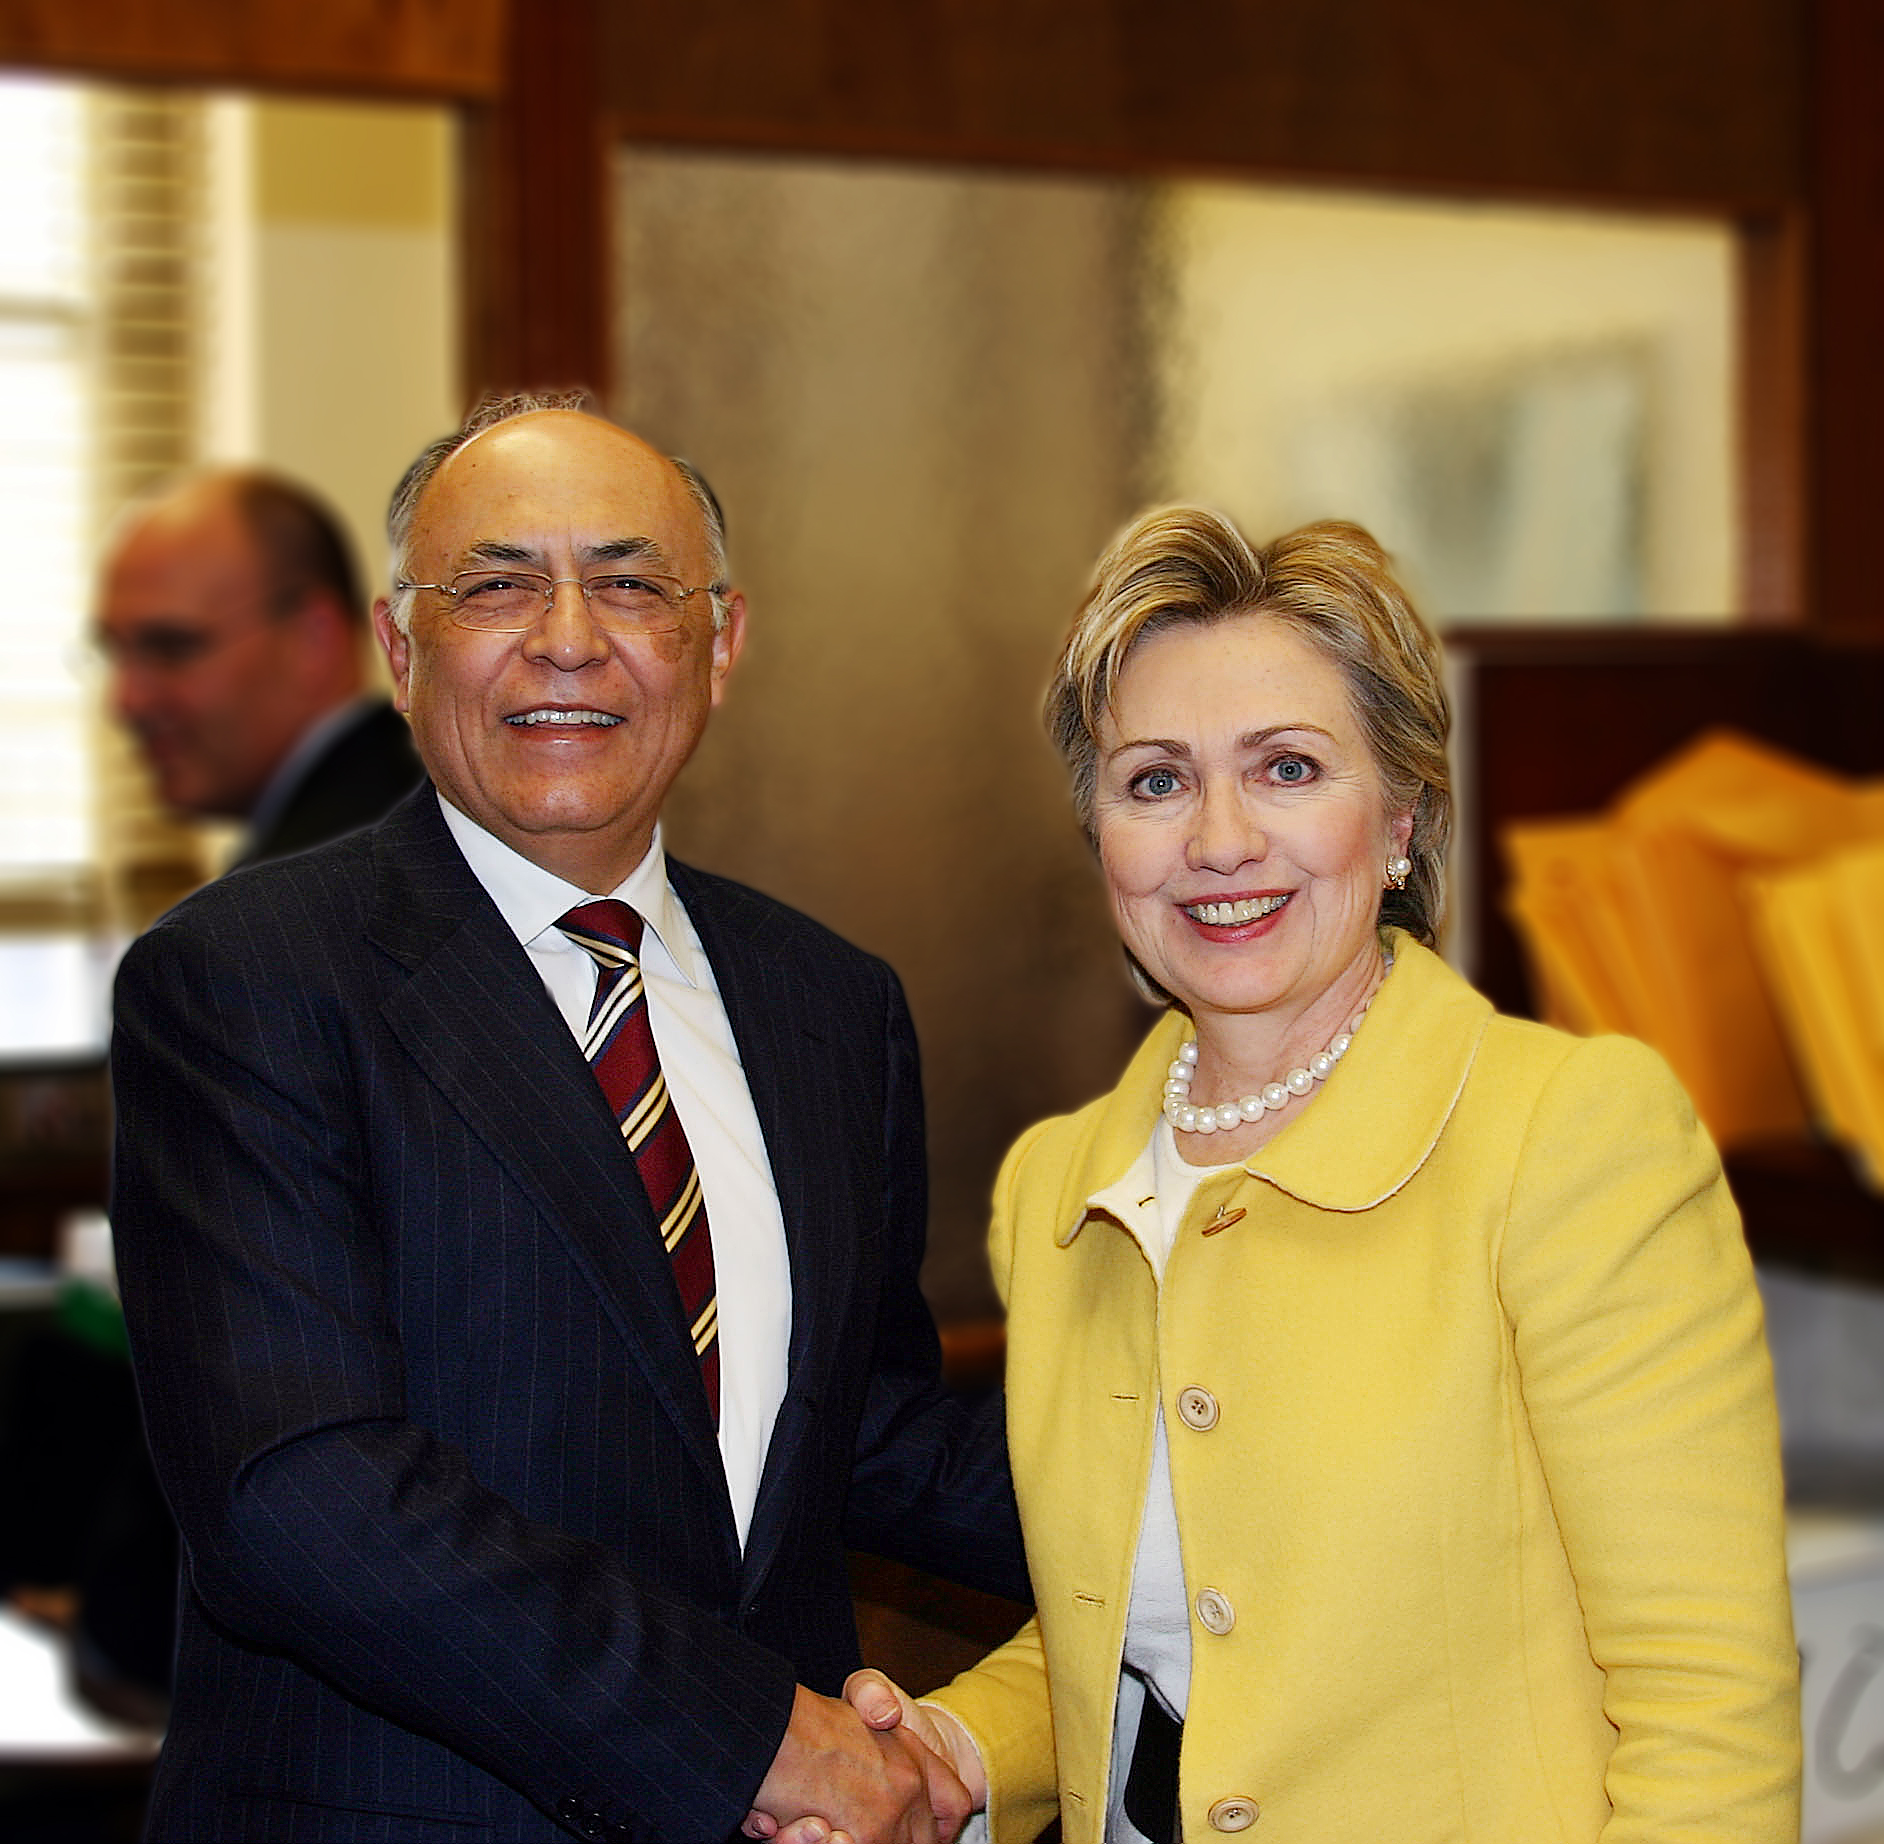 Hector with Hillary Clinton Jan. 2007-Edit copy.jpg